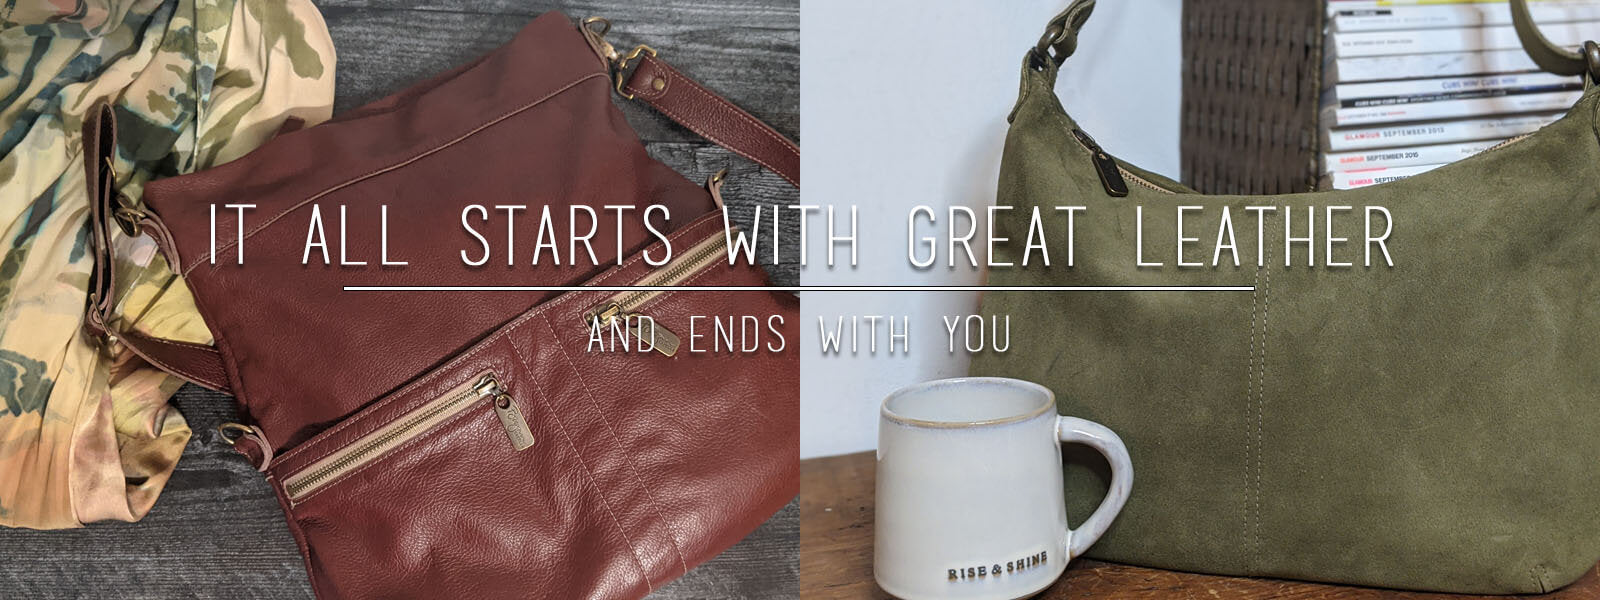 It All Starts With Great Leather and ends with you, Brynn Capella